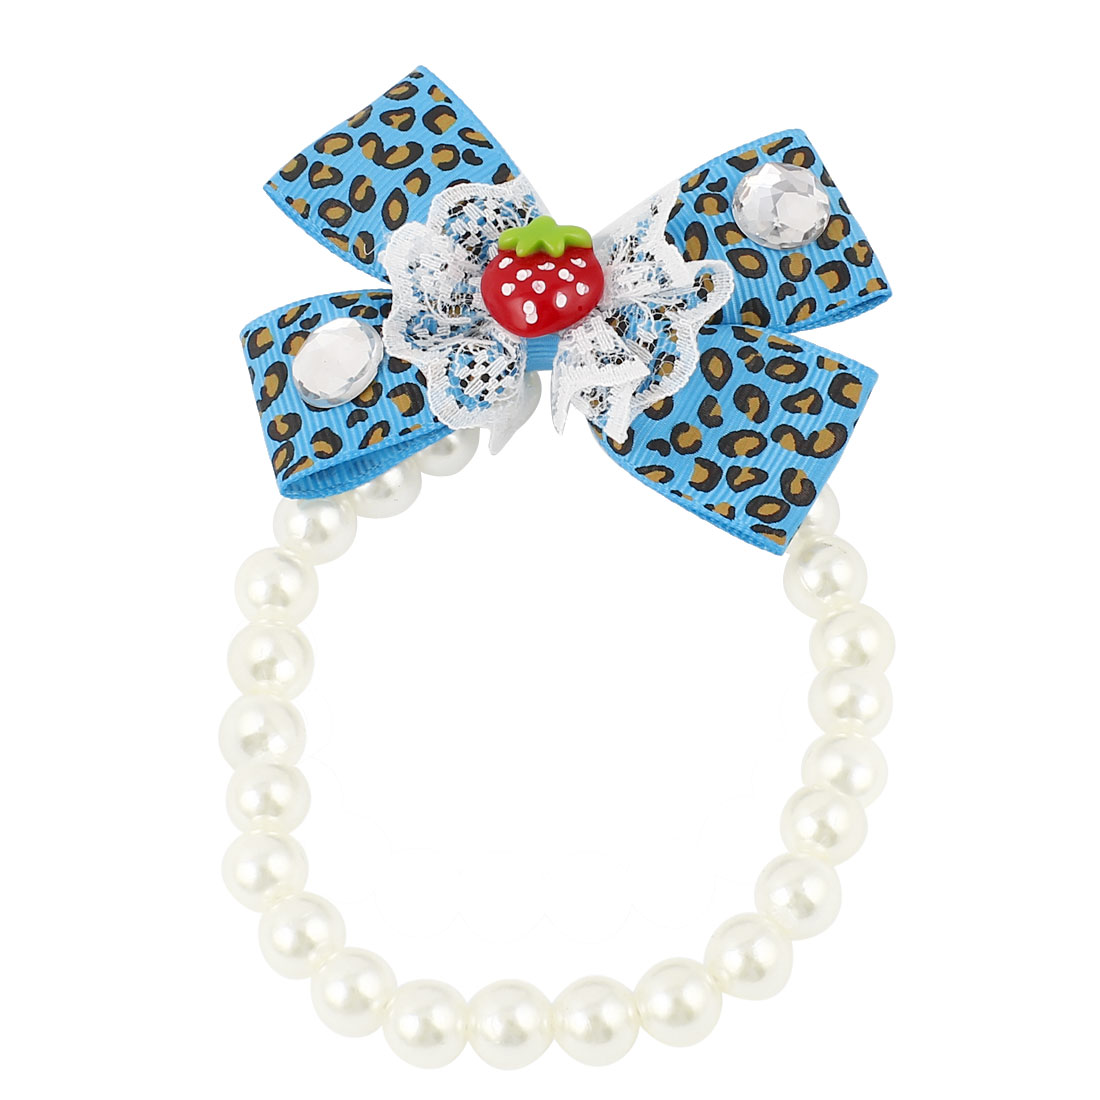 Lace Bowknot Accent Pet Dog Plastic Beads Pearls Collar Necklace White Blue S